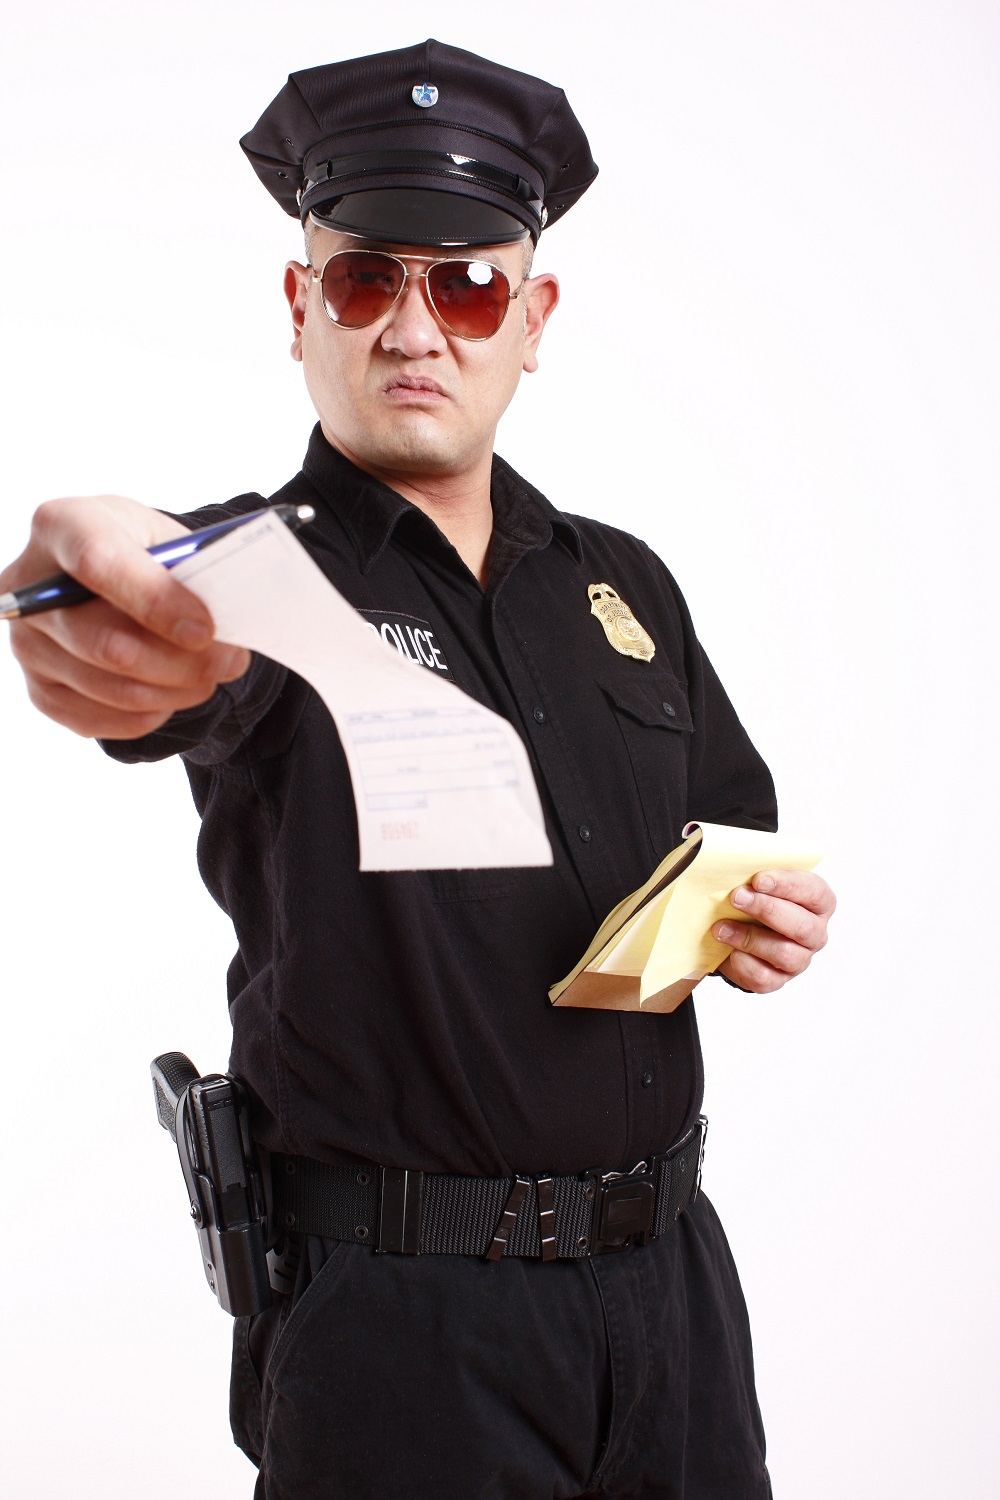 When the Police Lie in Your Case